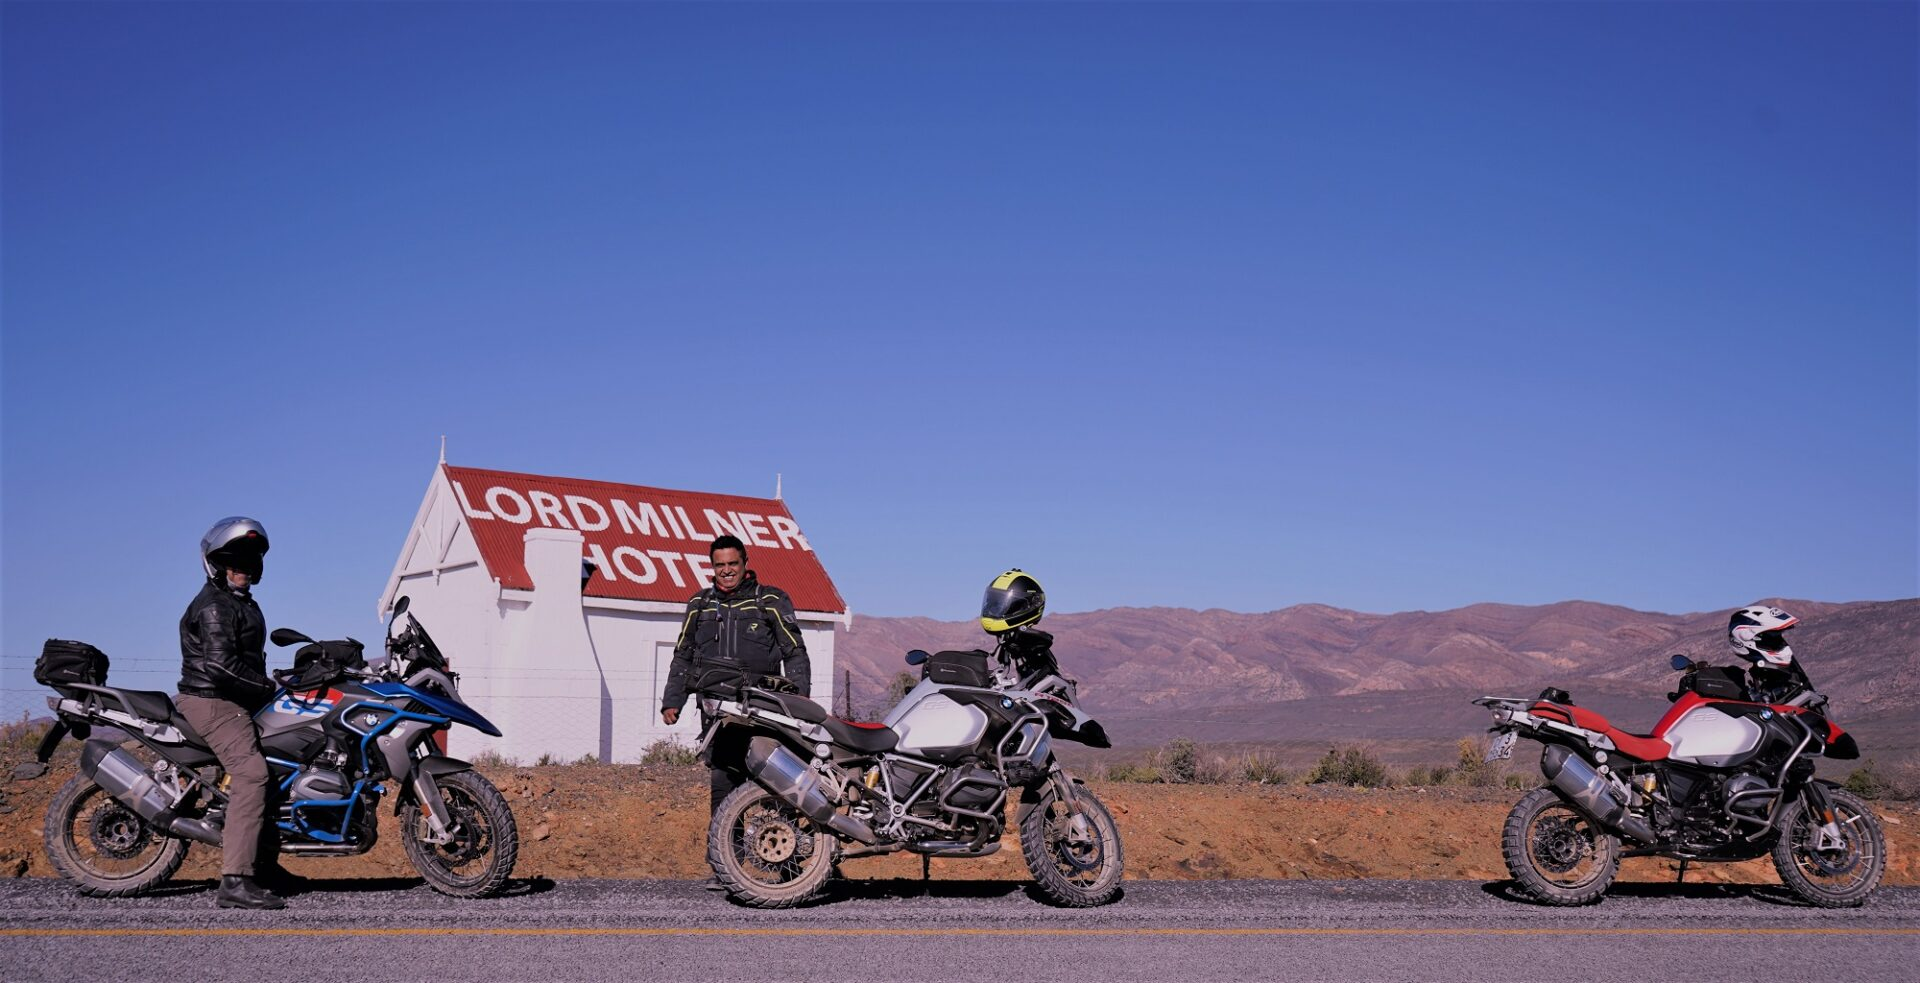 15 Day Grand South Africa Motorcycle Tour